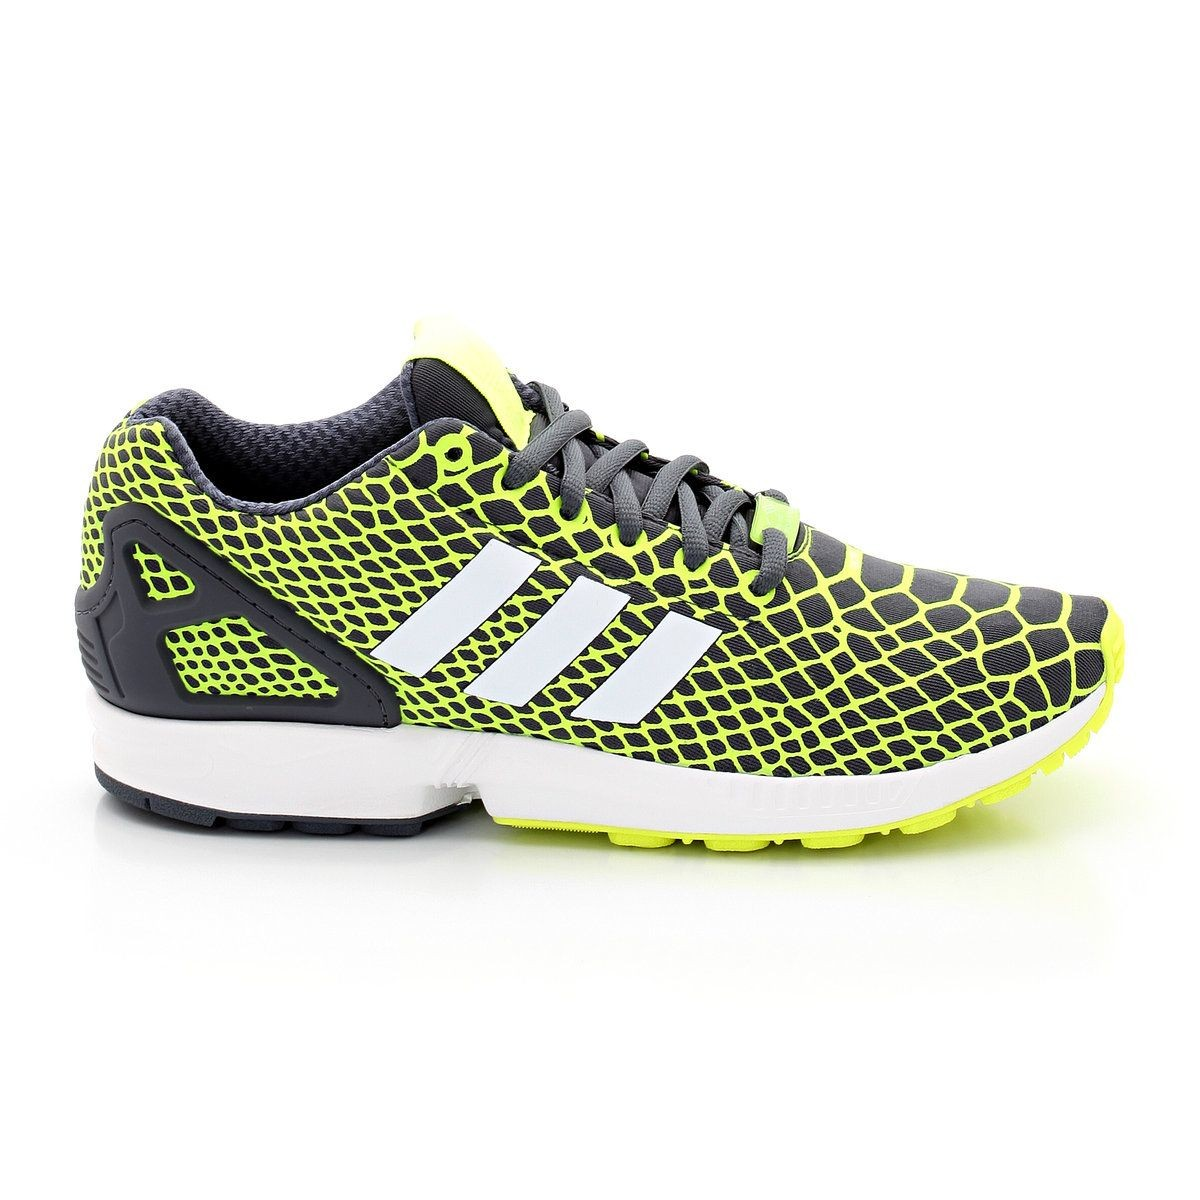 Adidas Zx Flux Techfit Taille : 46;45 13;40;41 13;44